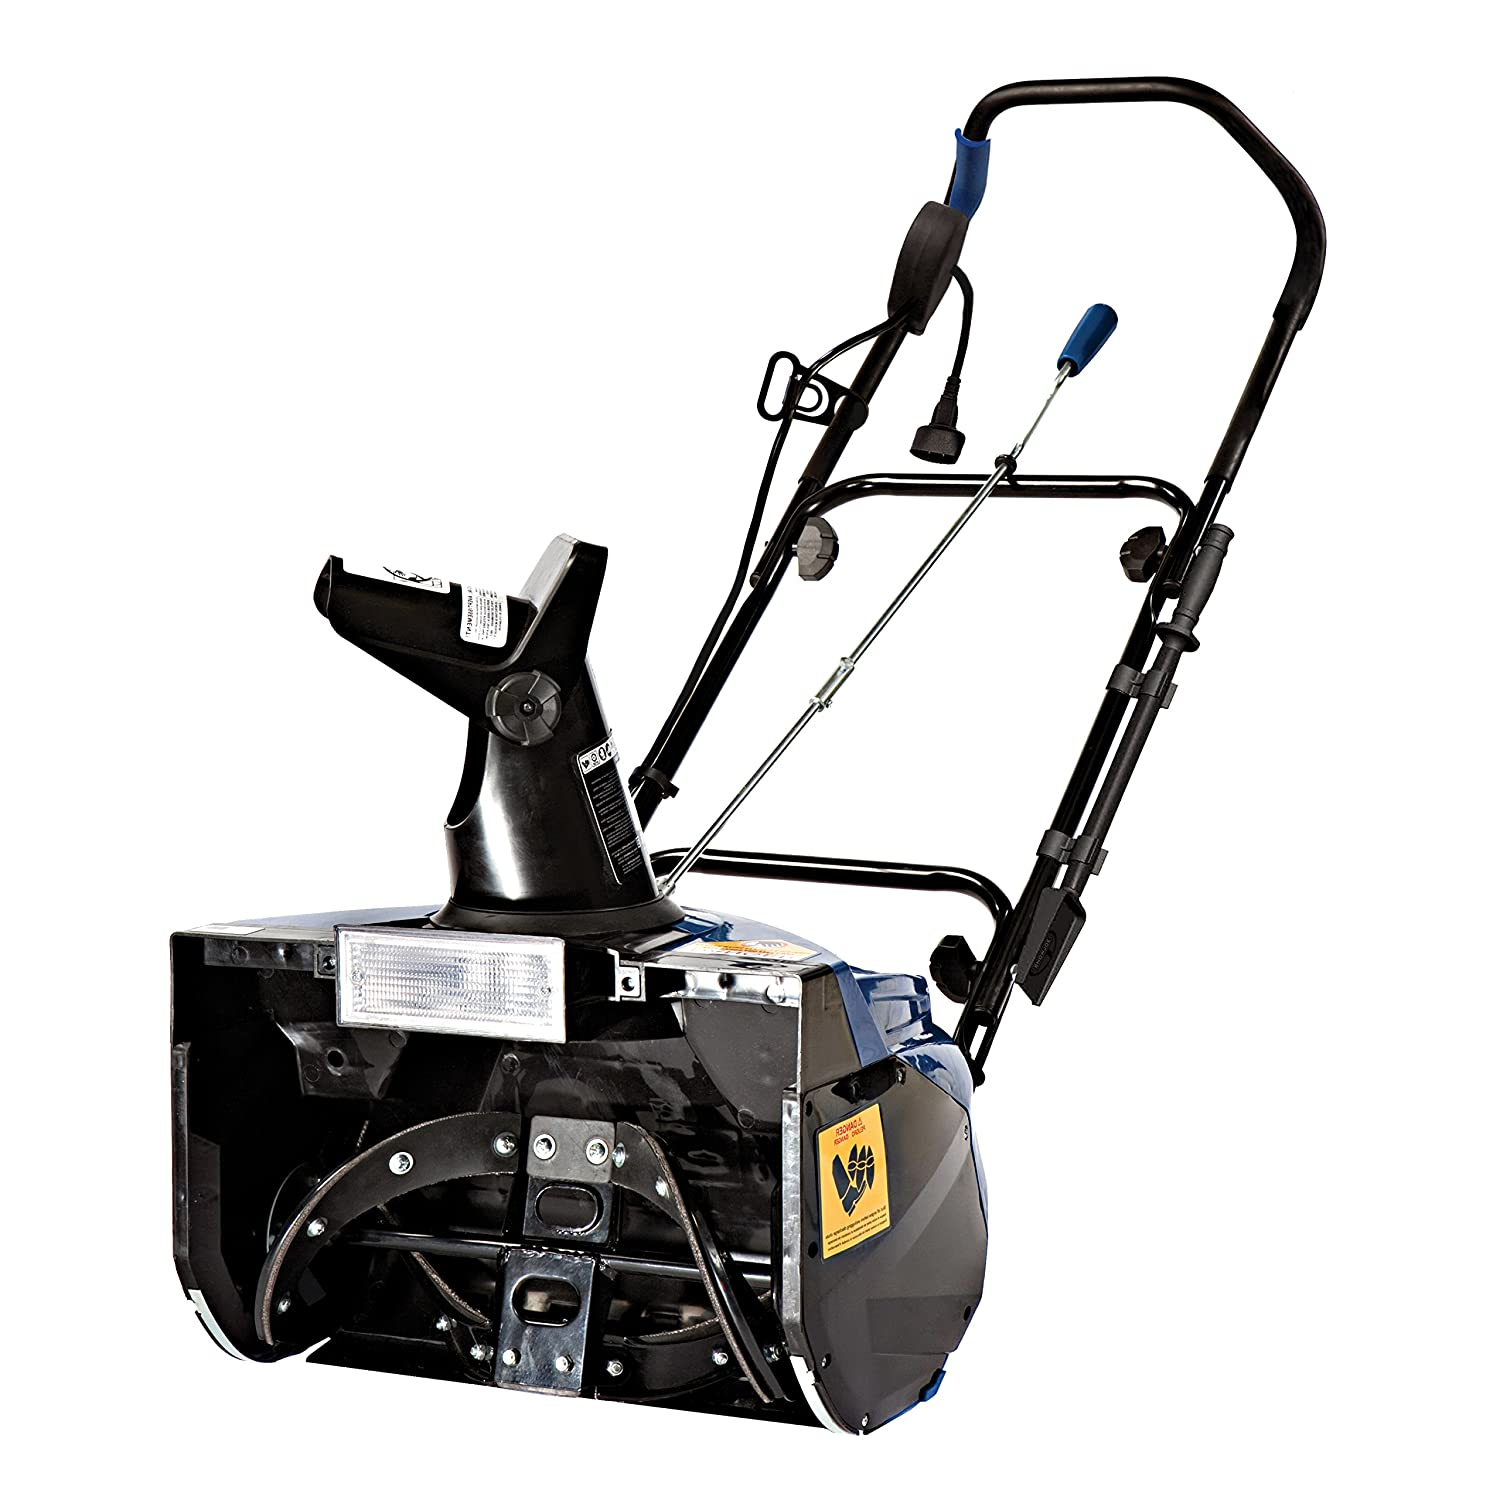 $229.99 (was $324) Snow Joe Ultra SJ623E 18-Inch 15-Amp Electric Snow Thrower with Light